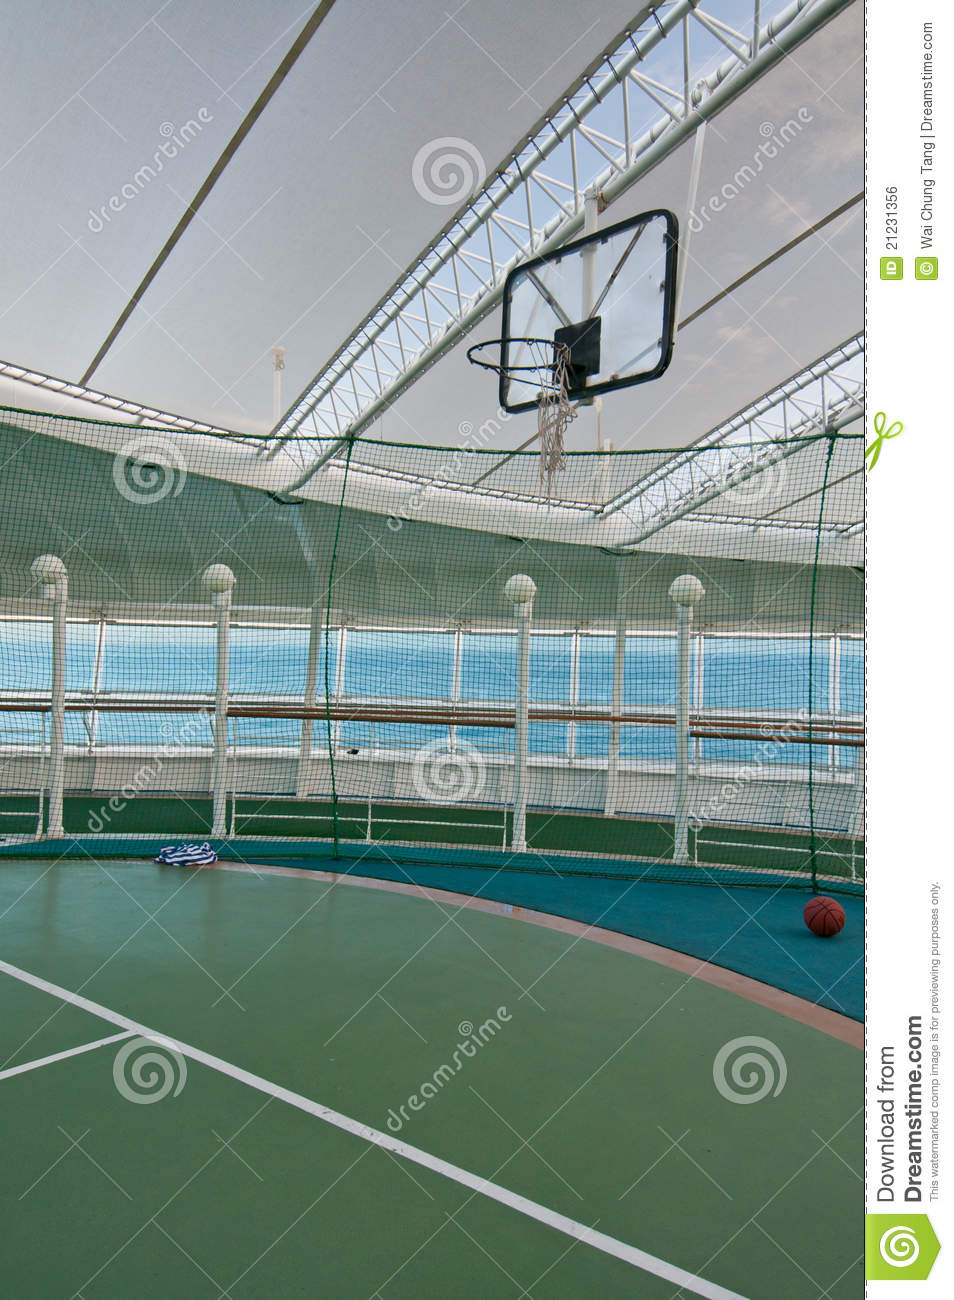 Basketball court royalty free stock image image 21231356 for Free inside basketball courts